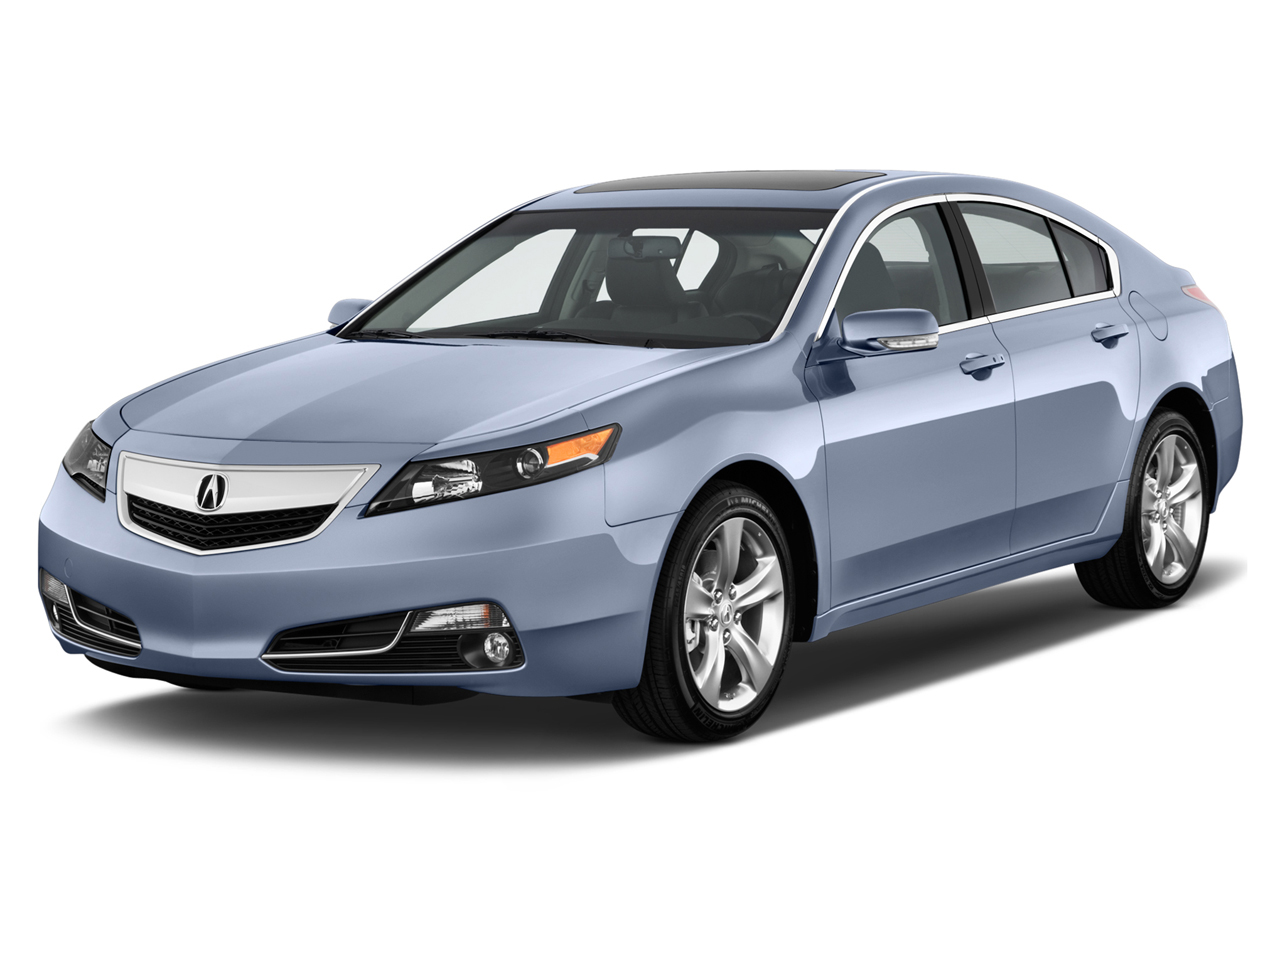 2012 Acura Tl Review Ratings Specs Prices And Photos The Car Connection